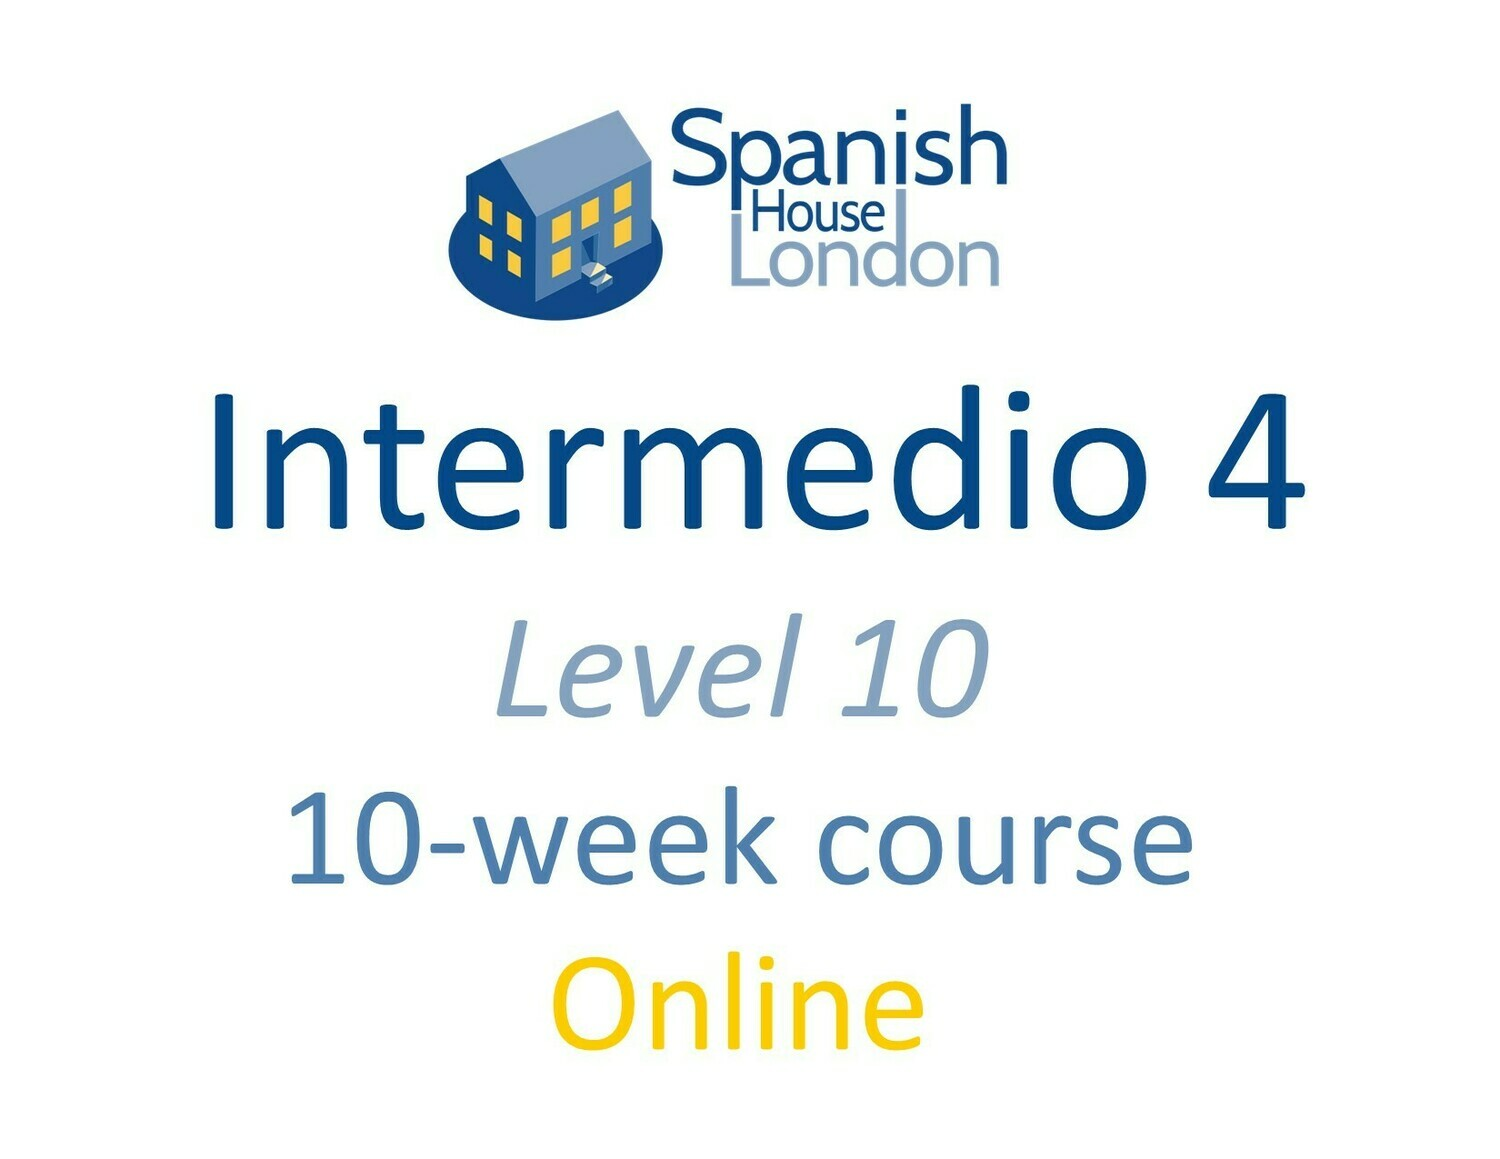 Intermedio 4 Course starting on 26th April at 6pm